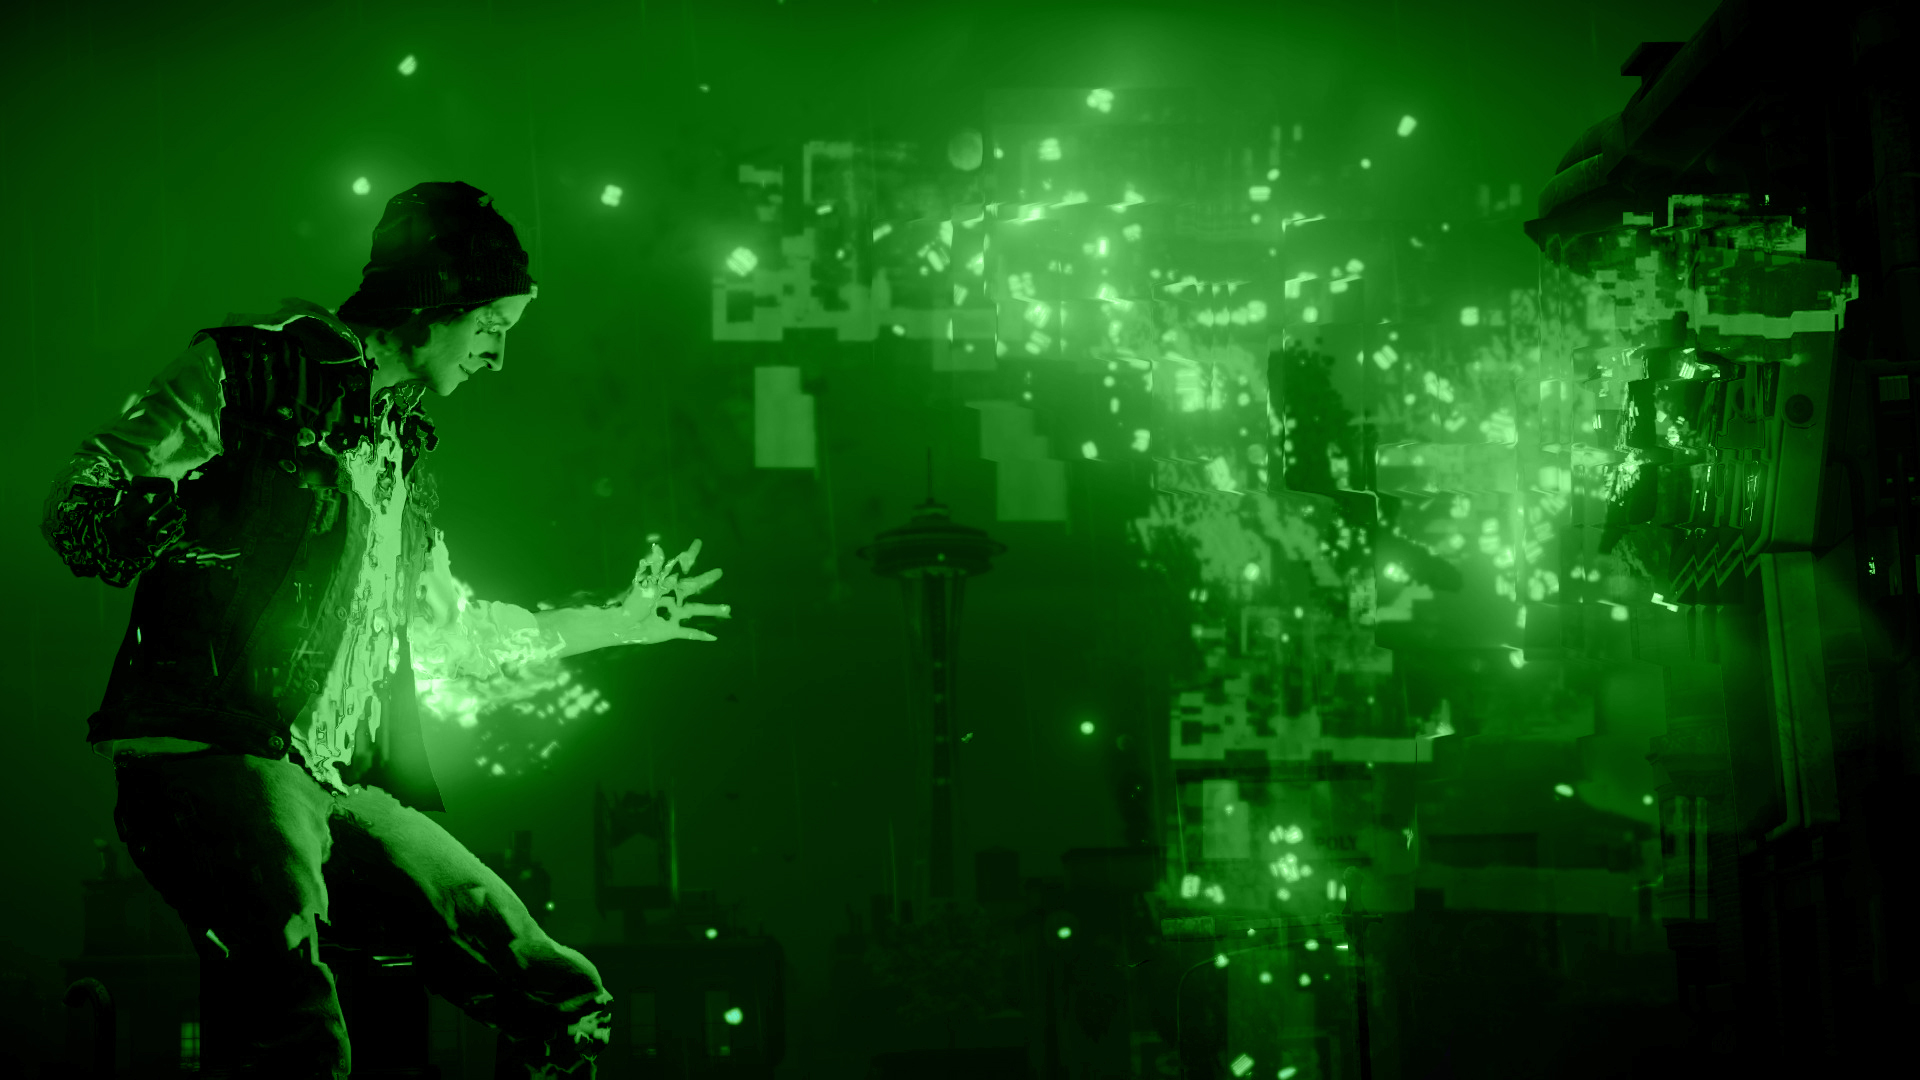 ... Infamous Second Son Green Video Wallpaper 5 by XtremisMaster